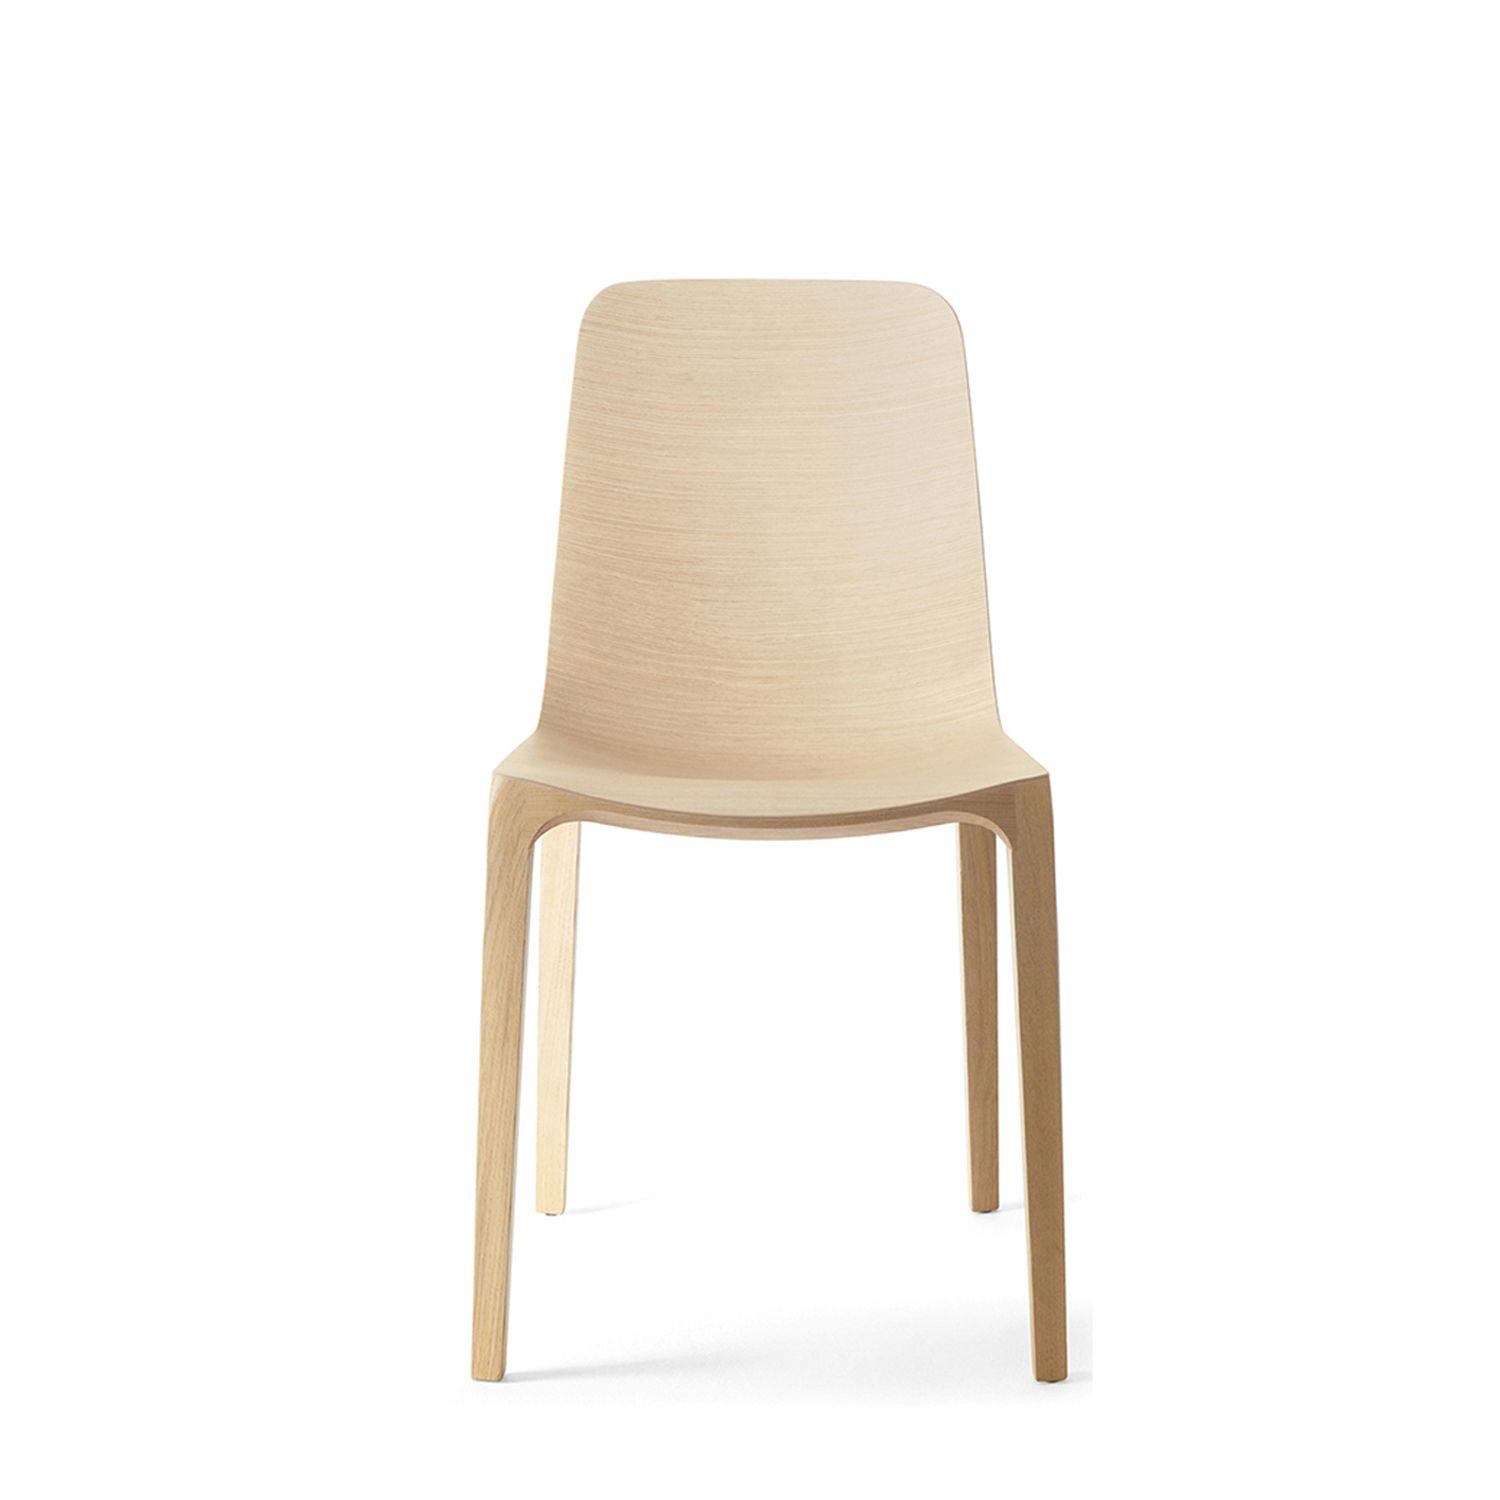 Oak Freda Dining Chair Available In Bleached Oak White Lacquer